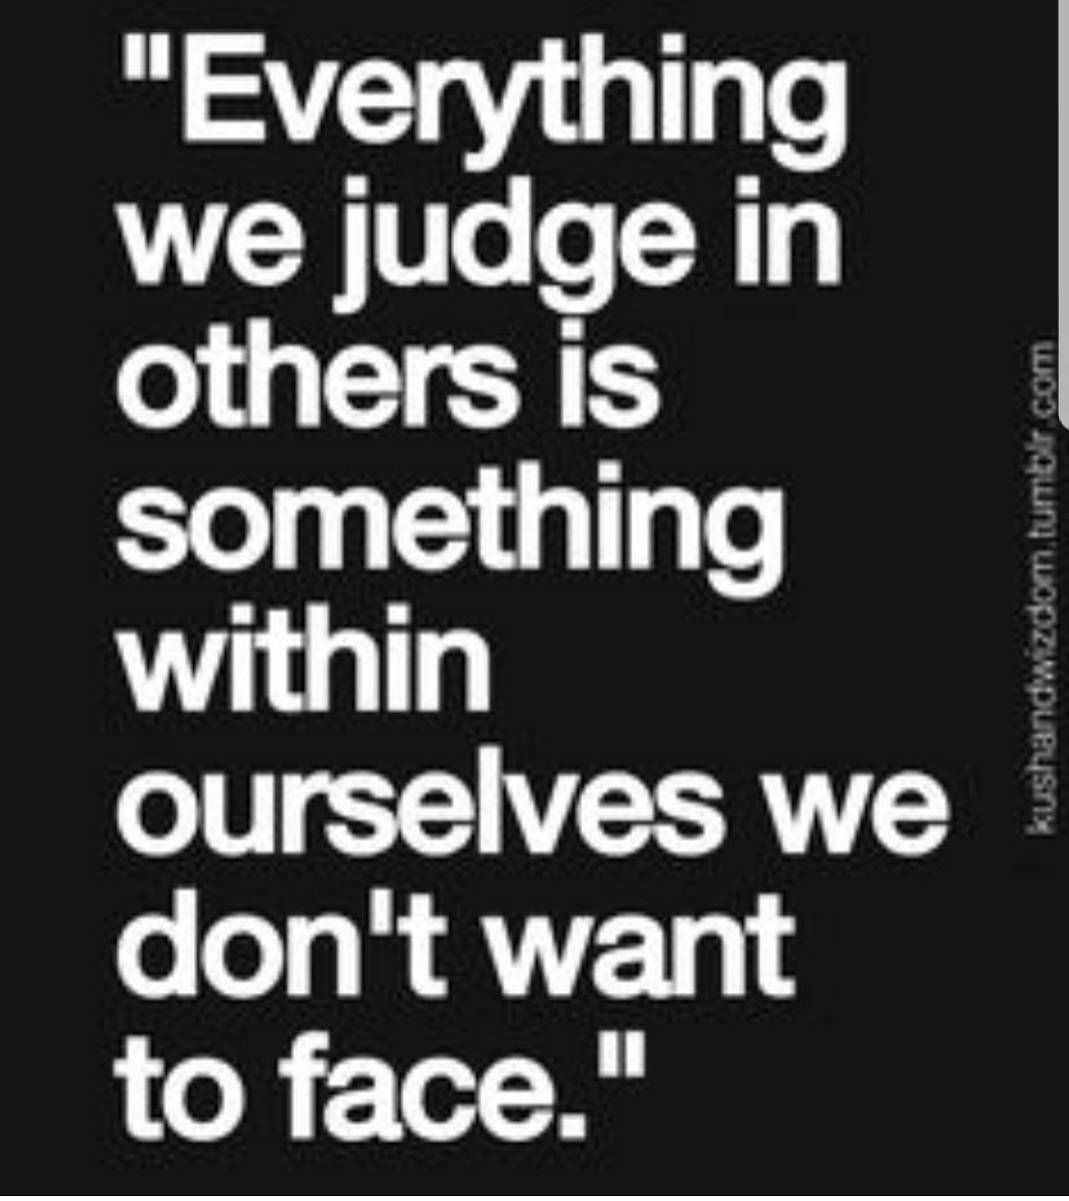 Quotes About Judging 10000000% Yessss Instead Of Judging Others Face Your Own Battles